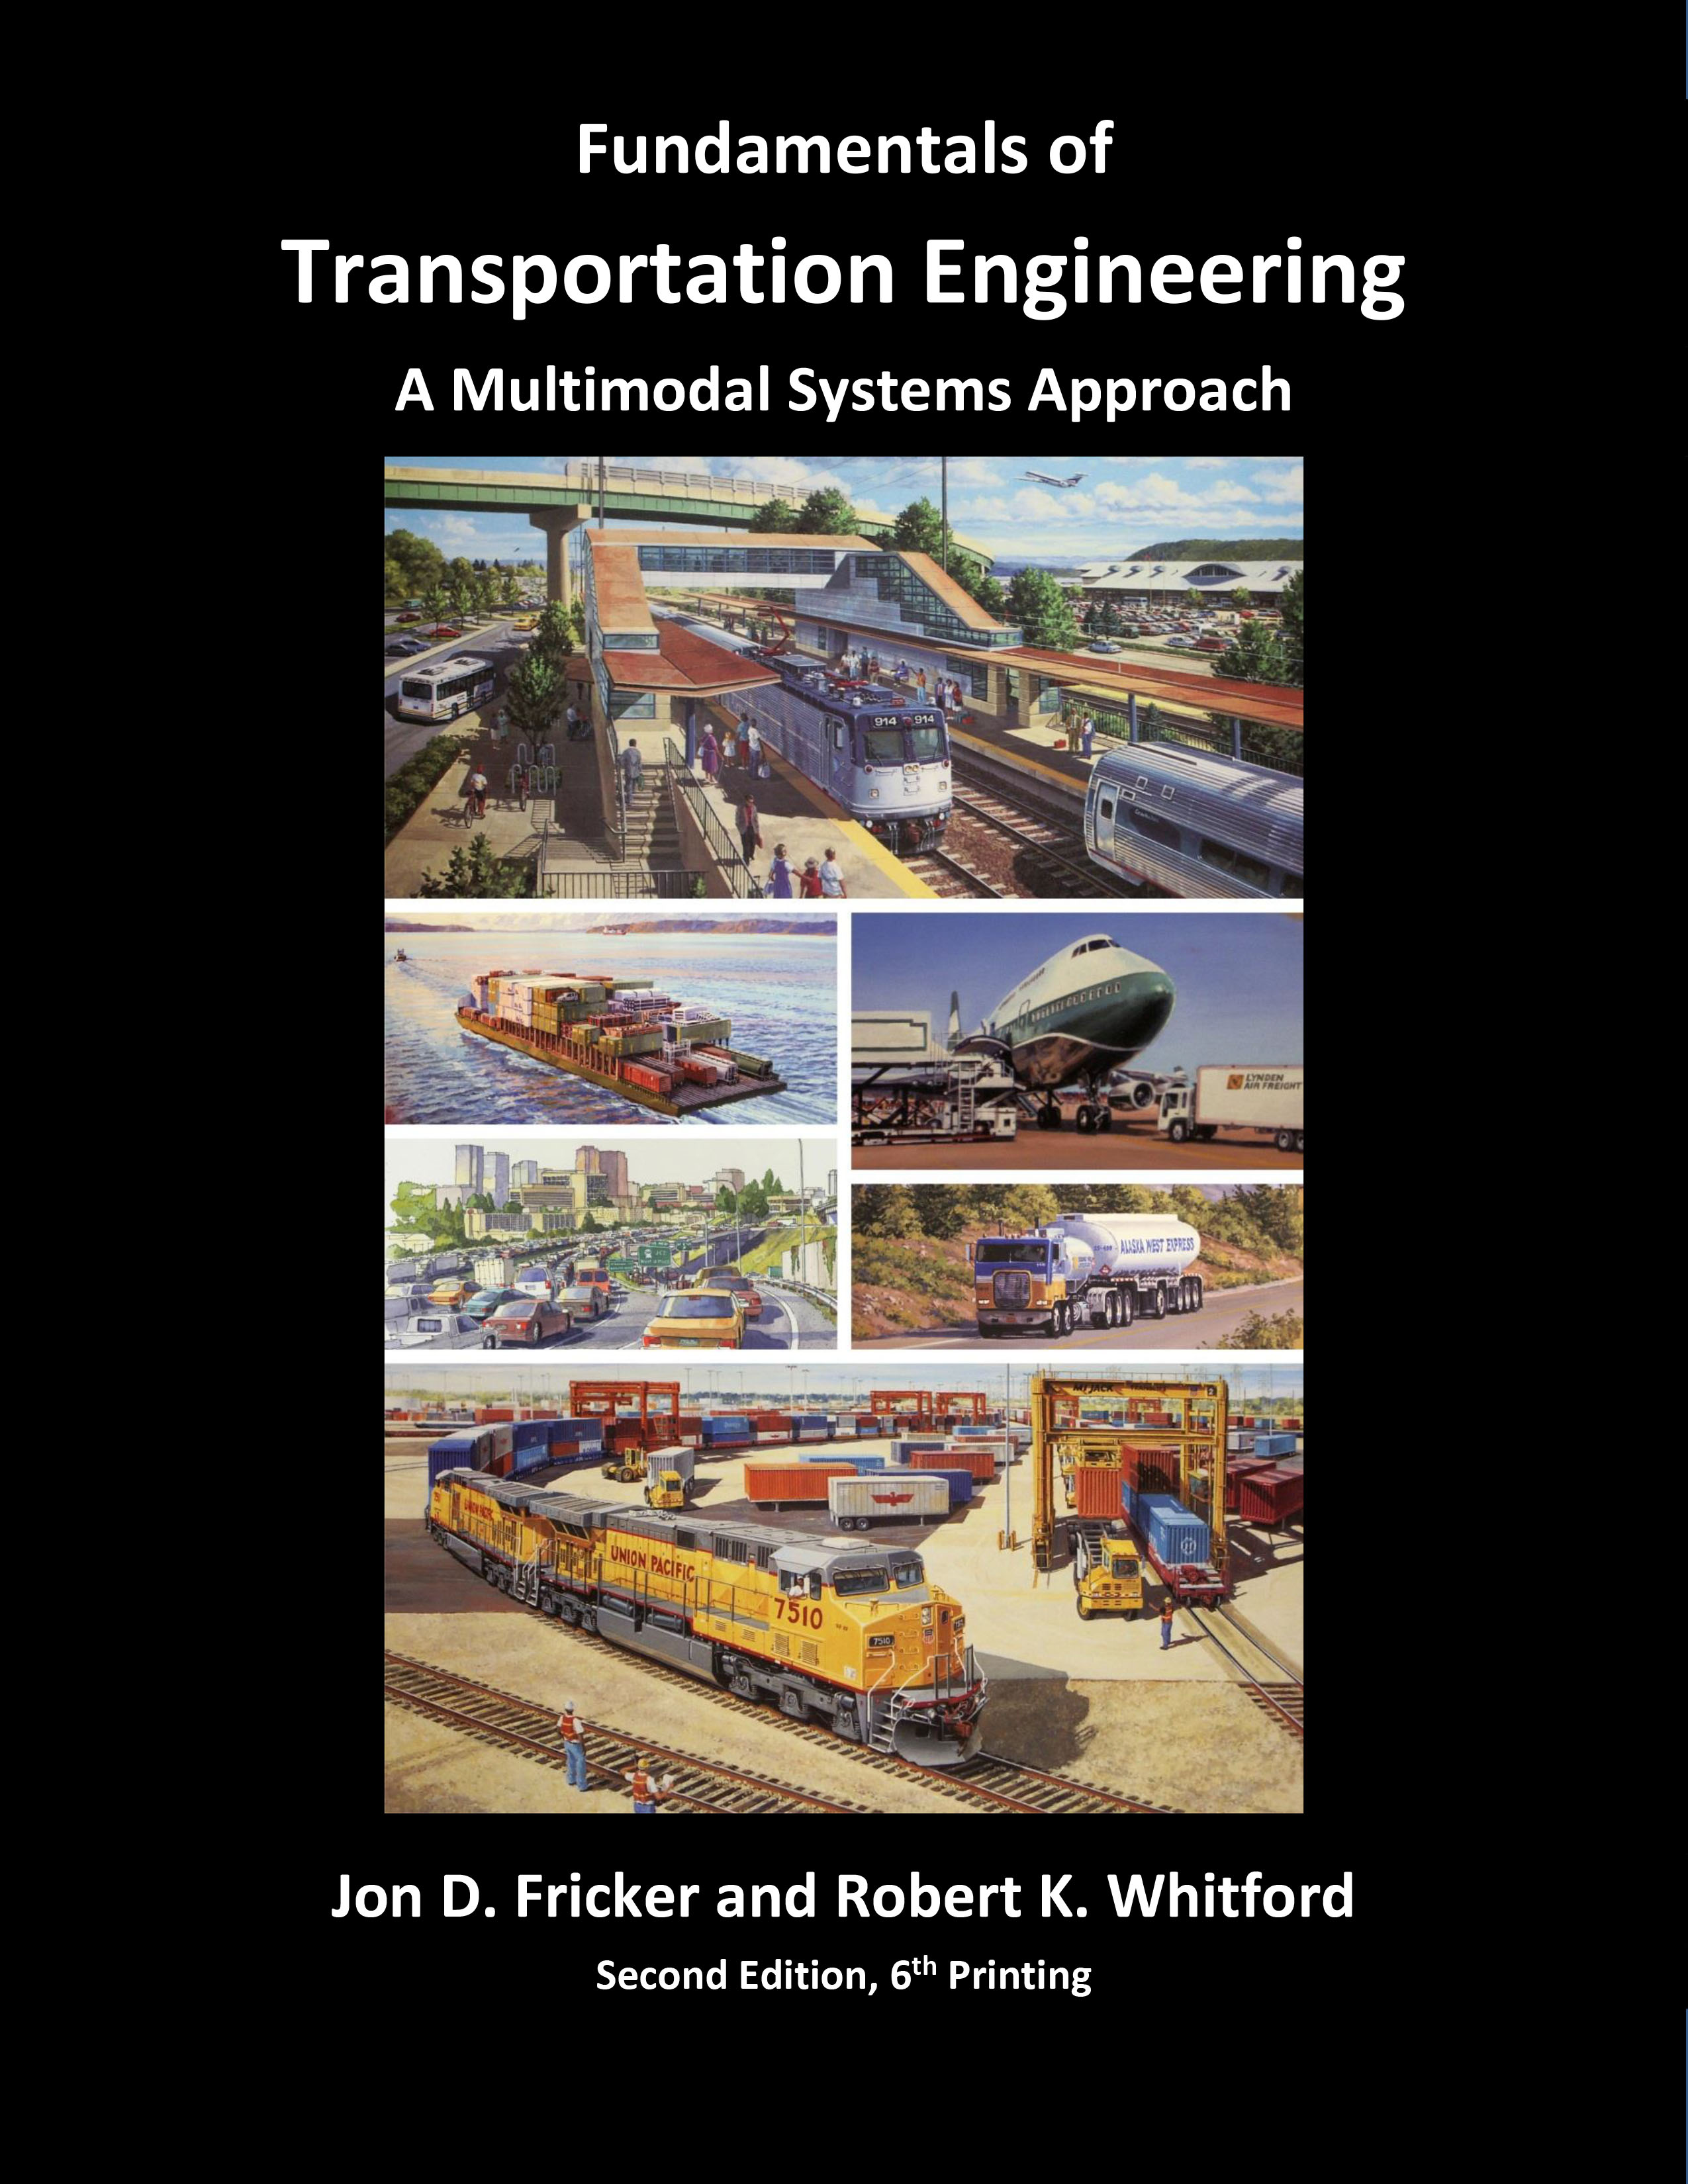 Fundamentals of Transportation Engineering/Fricker and Whitford